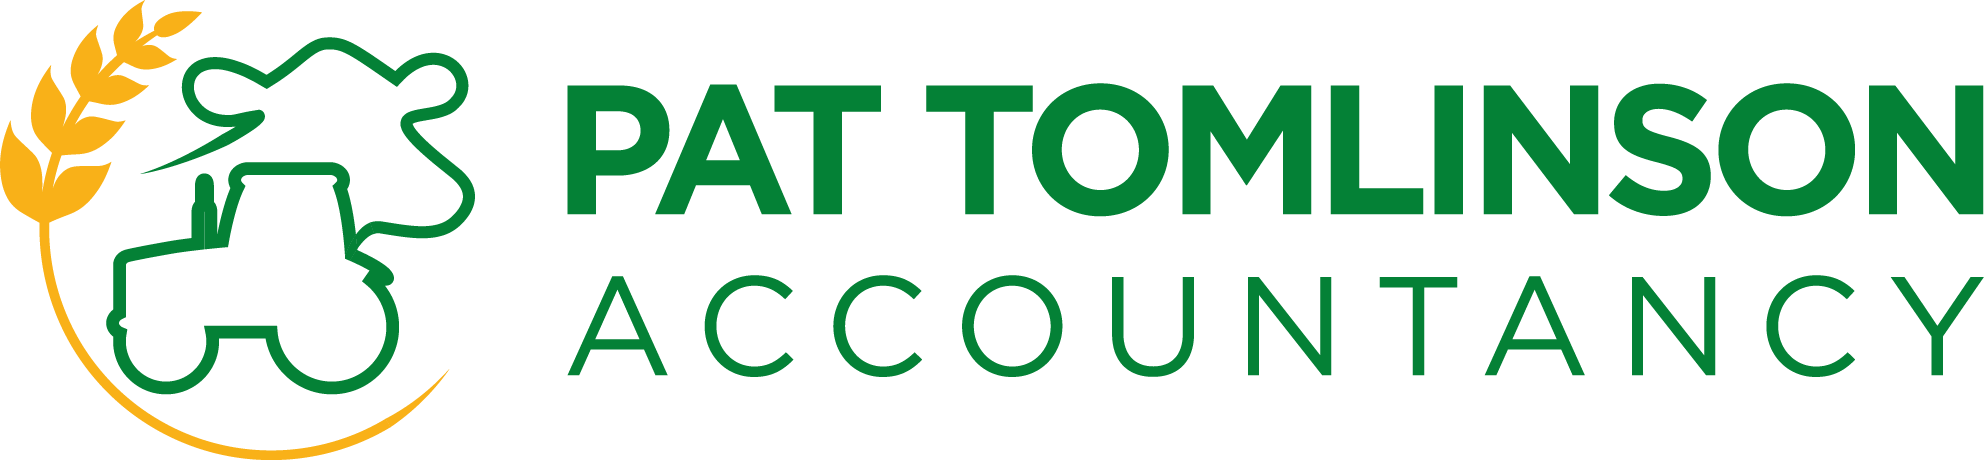 PT Accountancy Logo